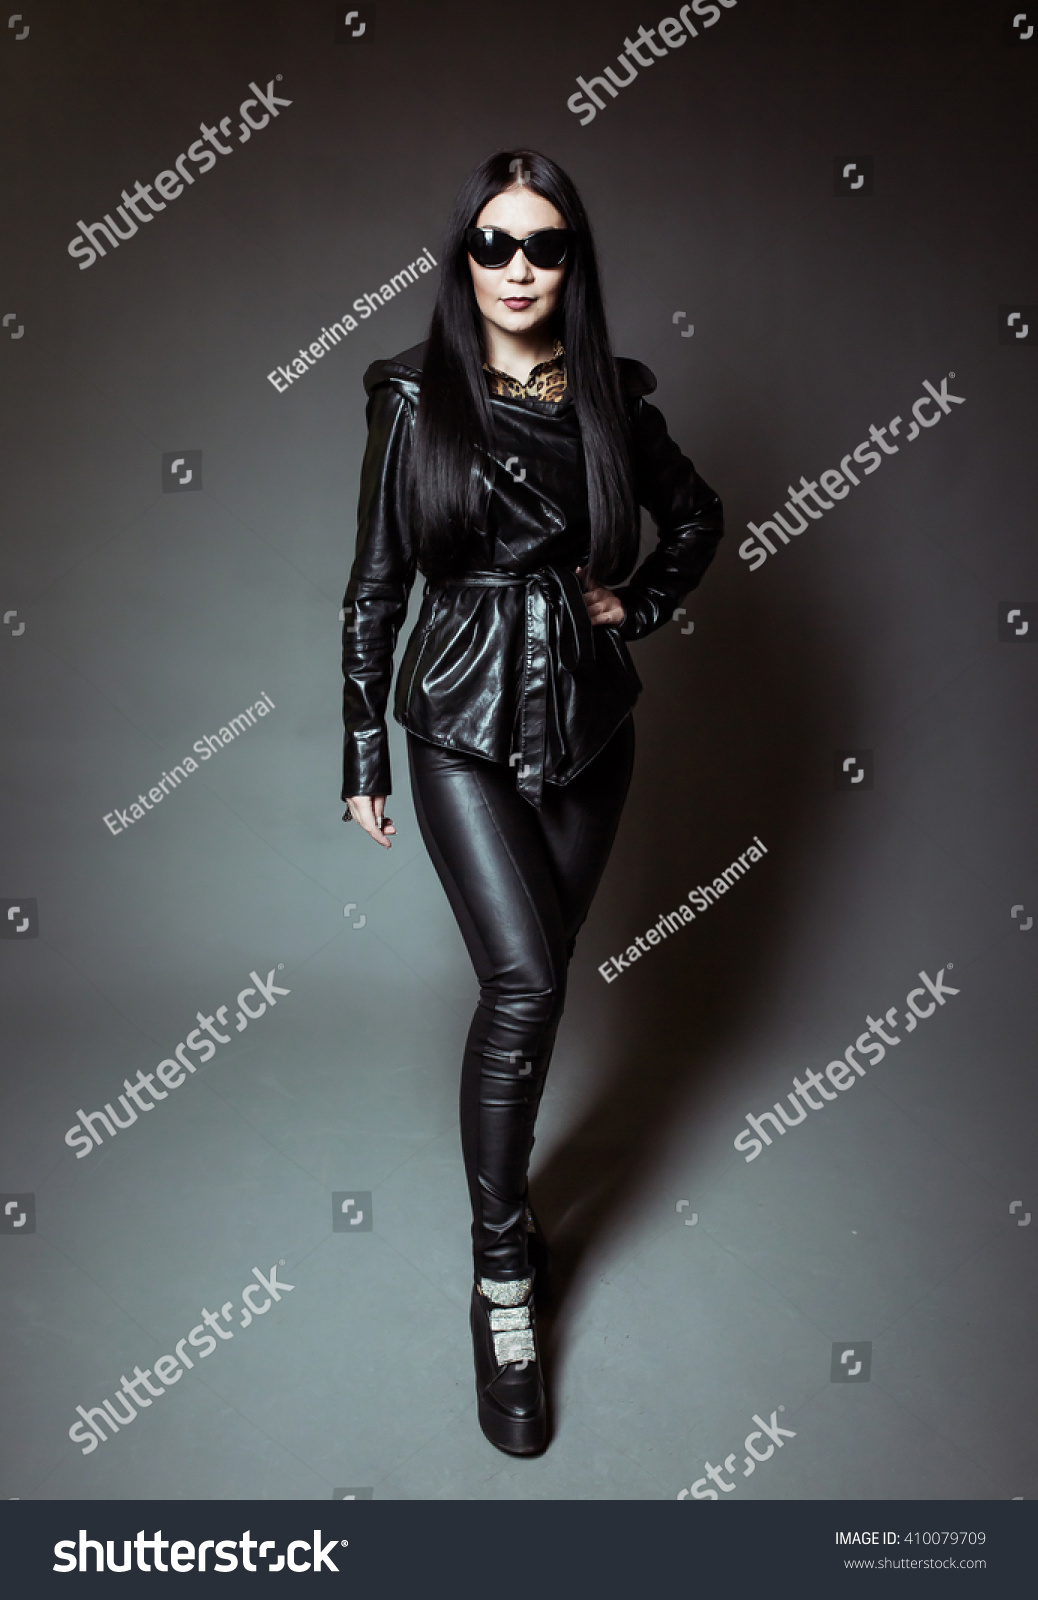 6815d4e86 Girl with black glasses in a leather jacket and leather pants on a dark  background. Royalty Free Stock ...